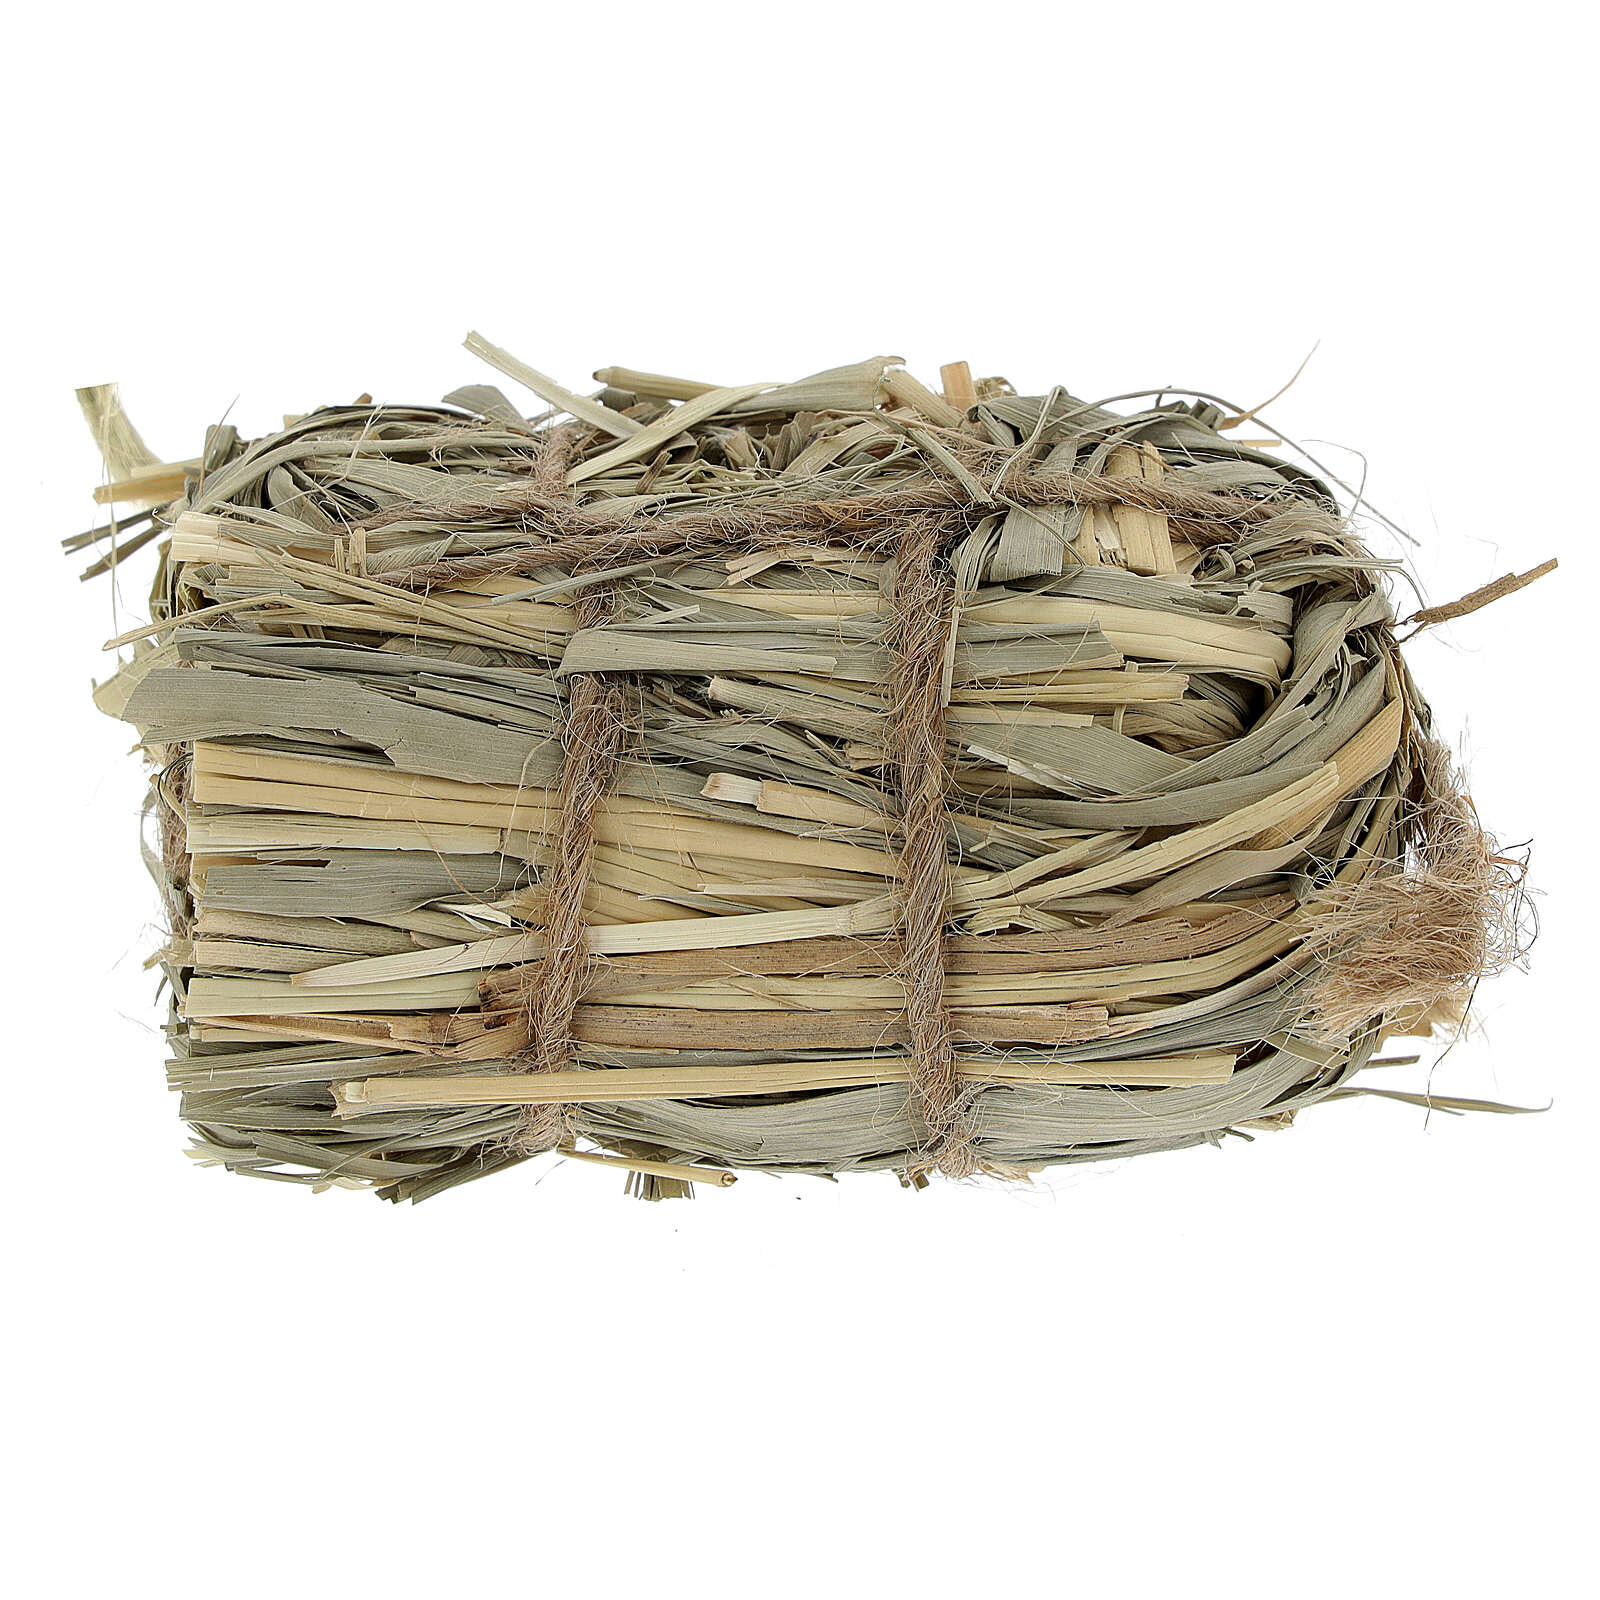 Hay bale 3x7x4 cm for Nativity Scene with 8-10-12 cm figurines 4